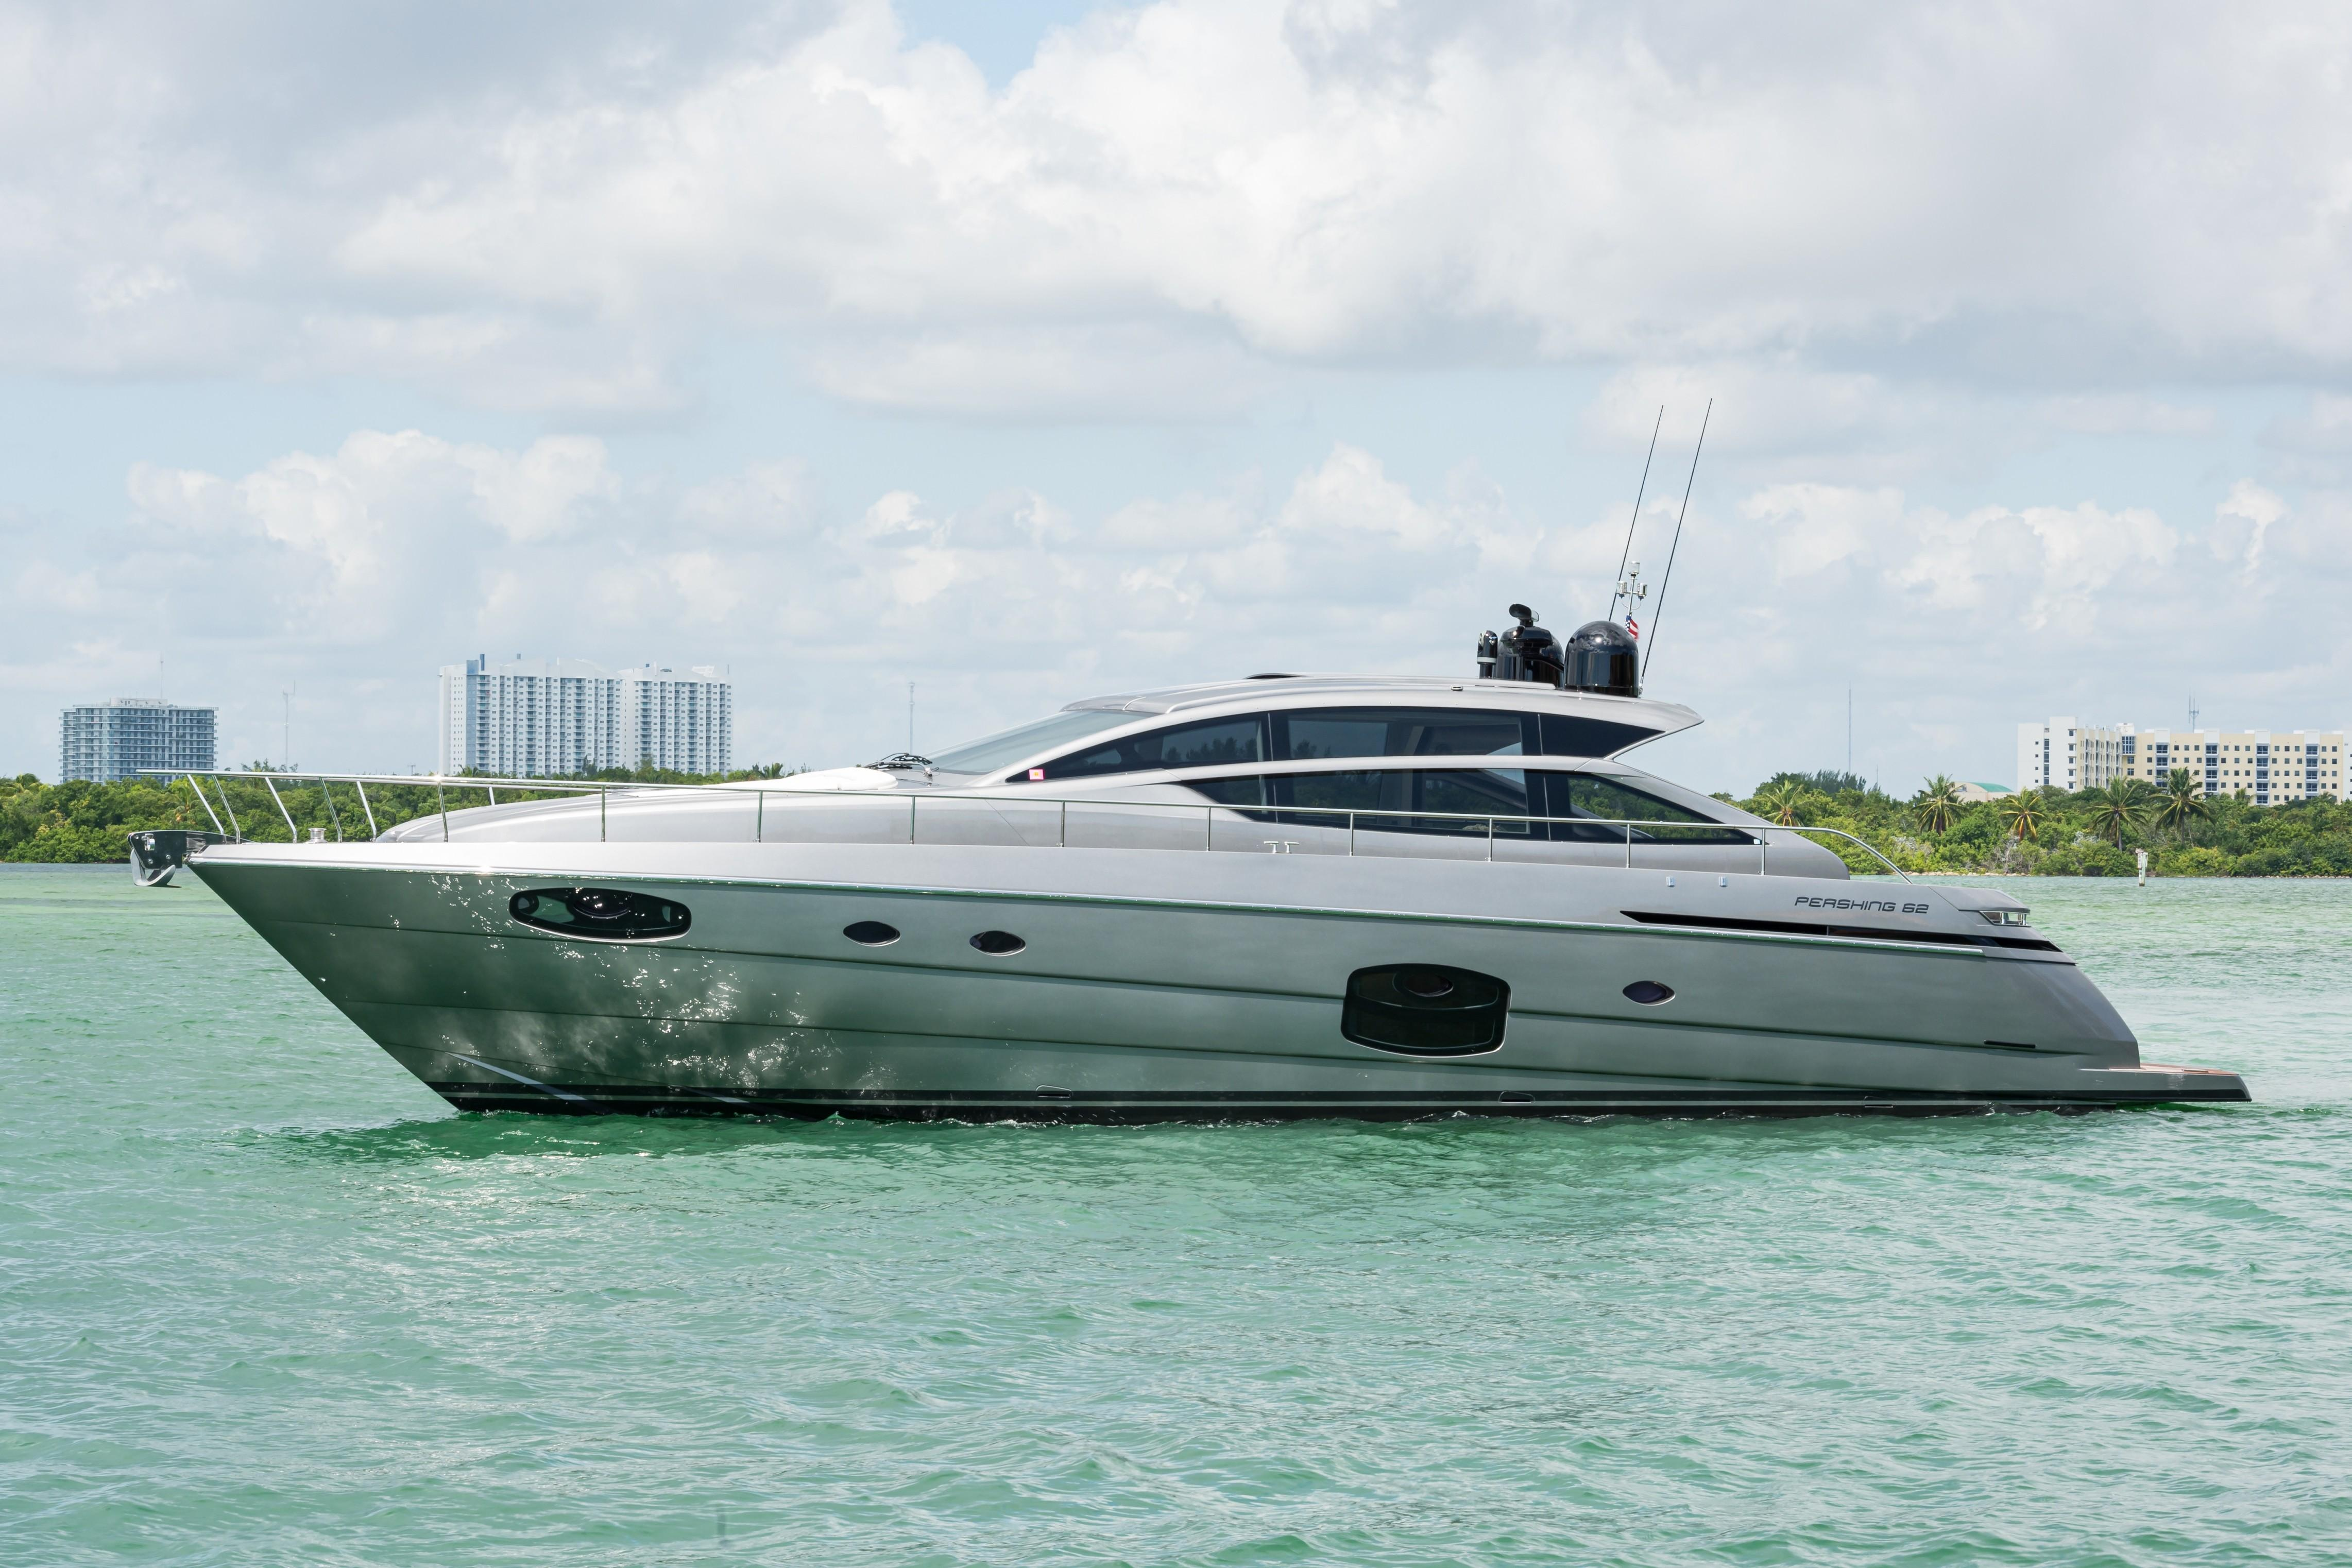 2016 Pershing 62 - Profile